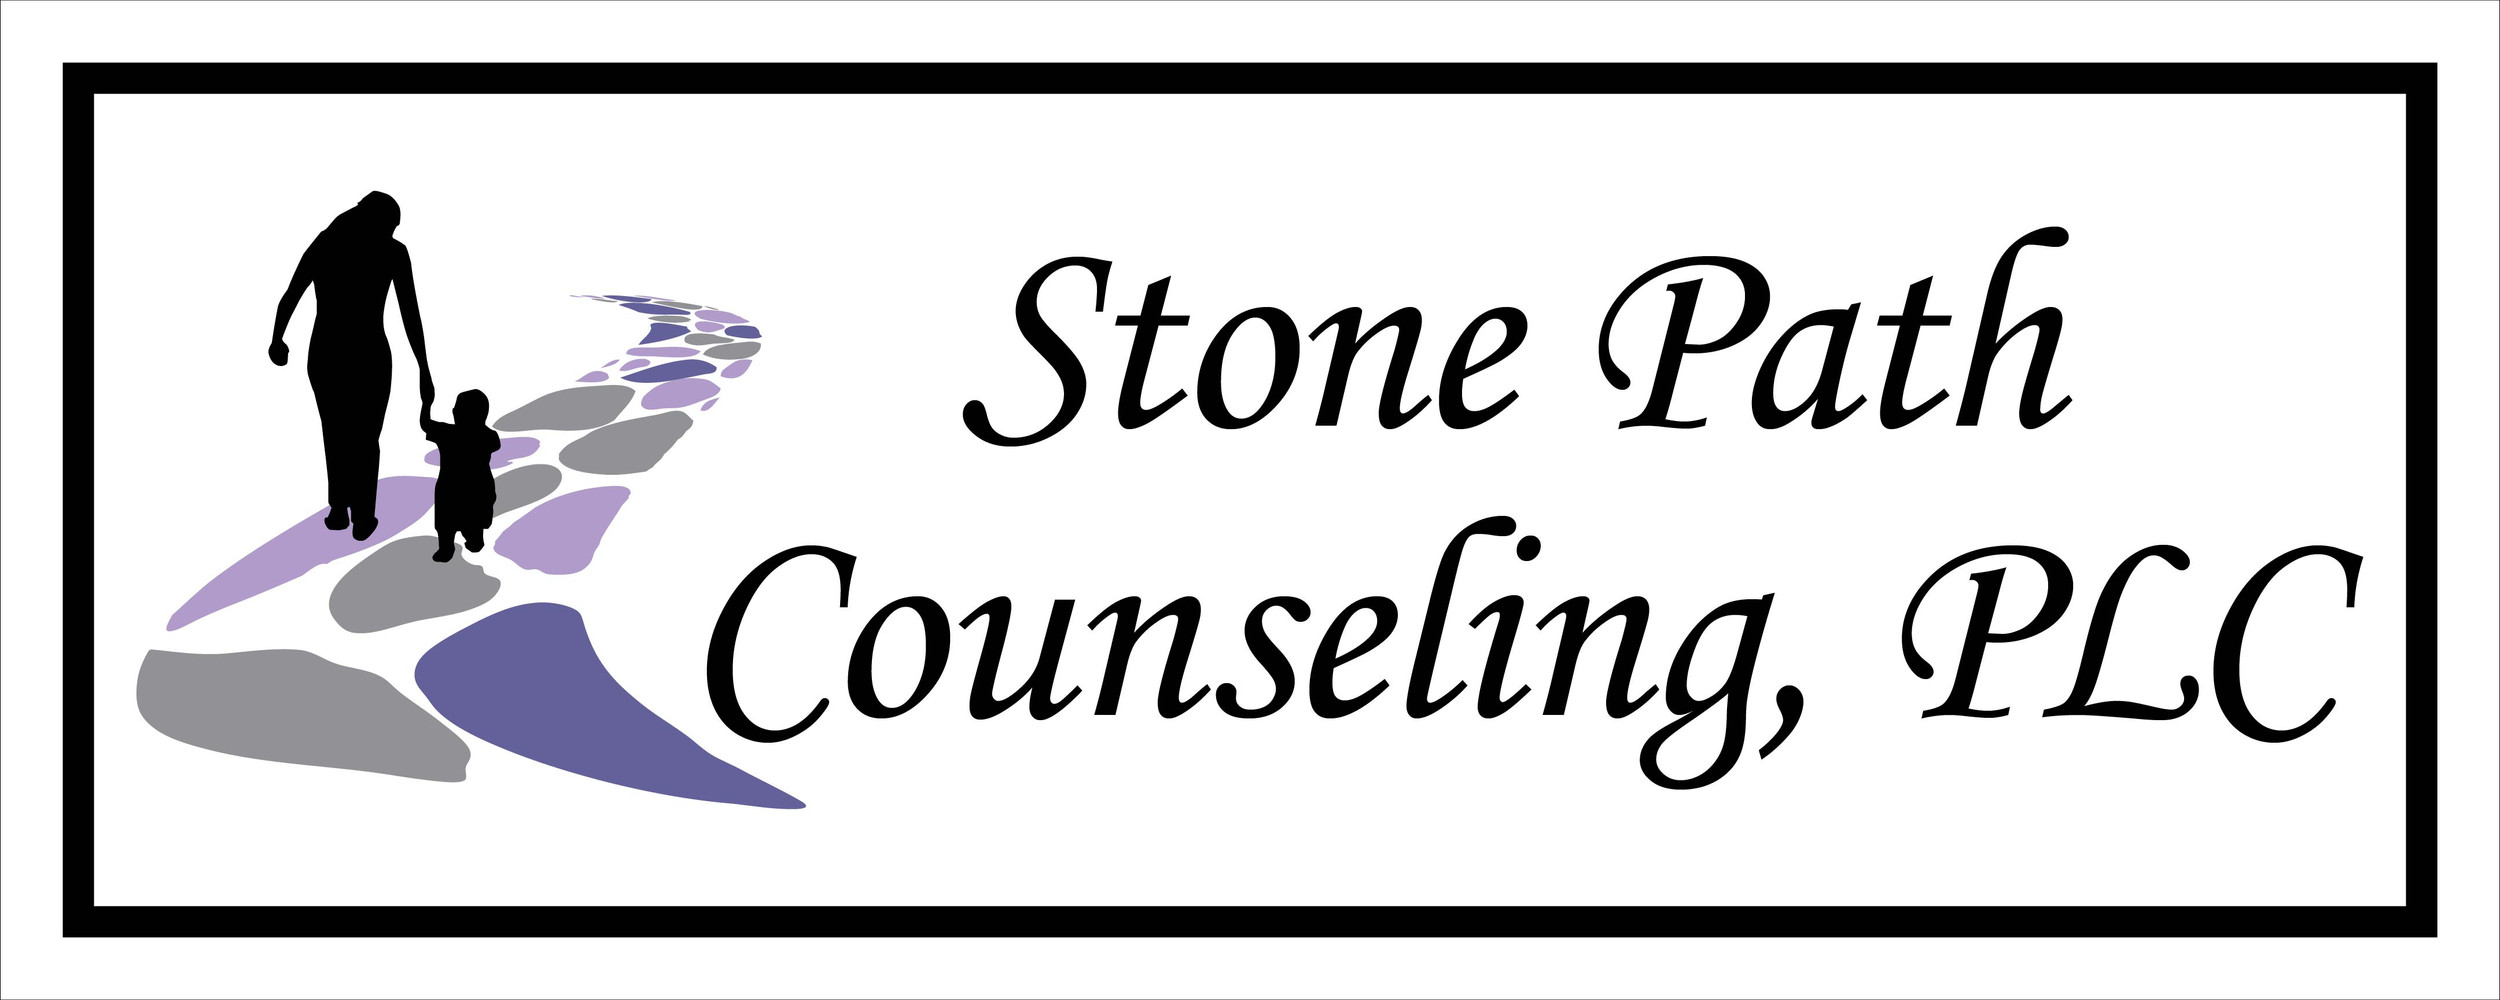 Counseling Services Stone Path Counseling Fayetteville